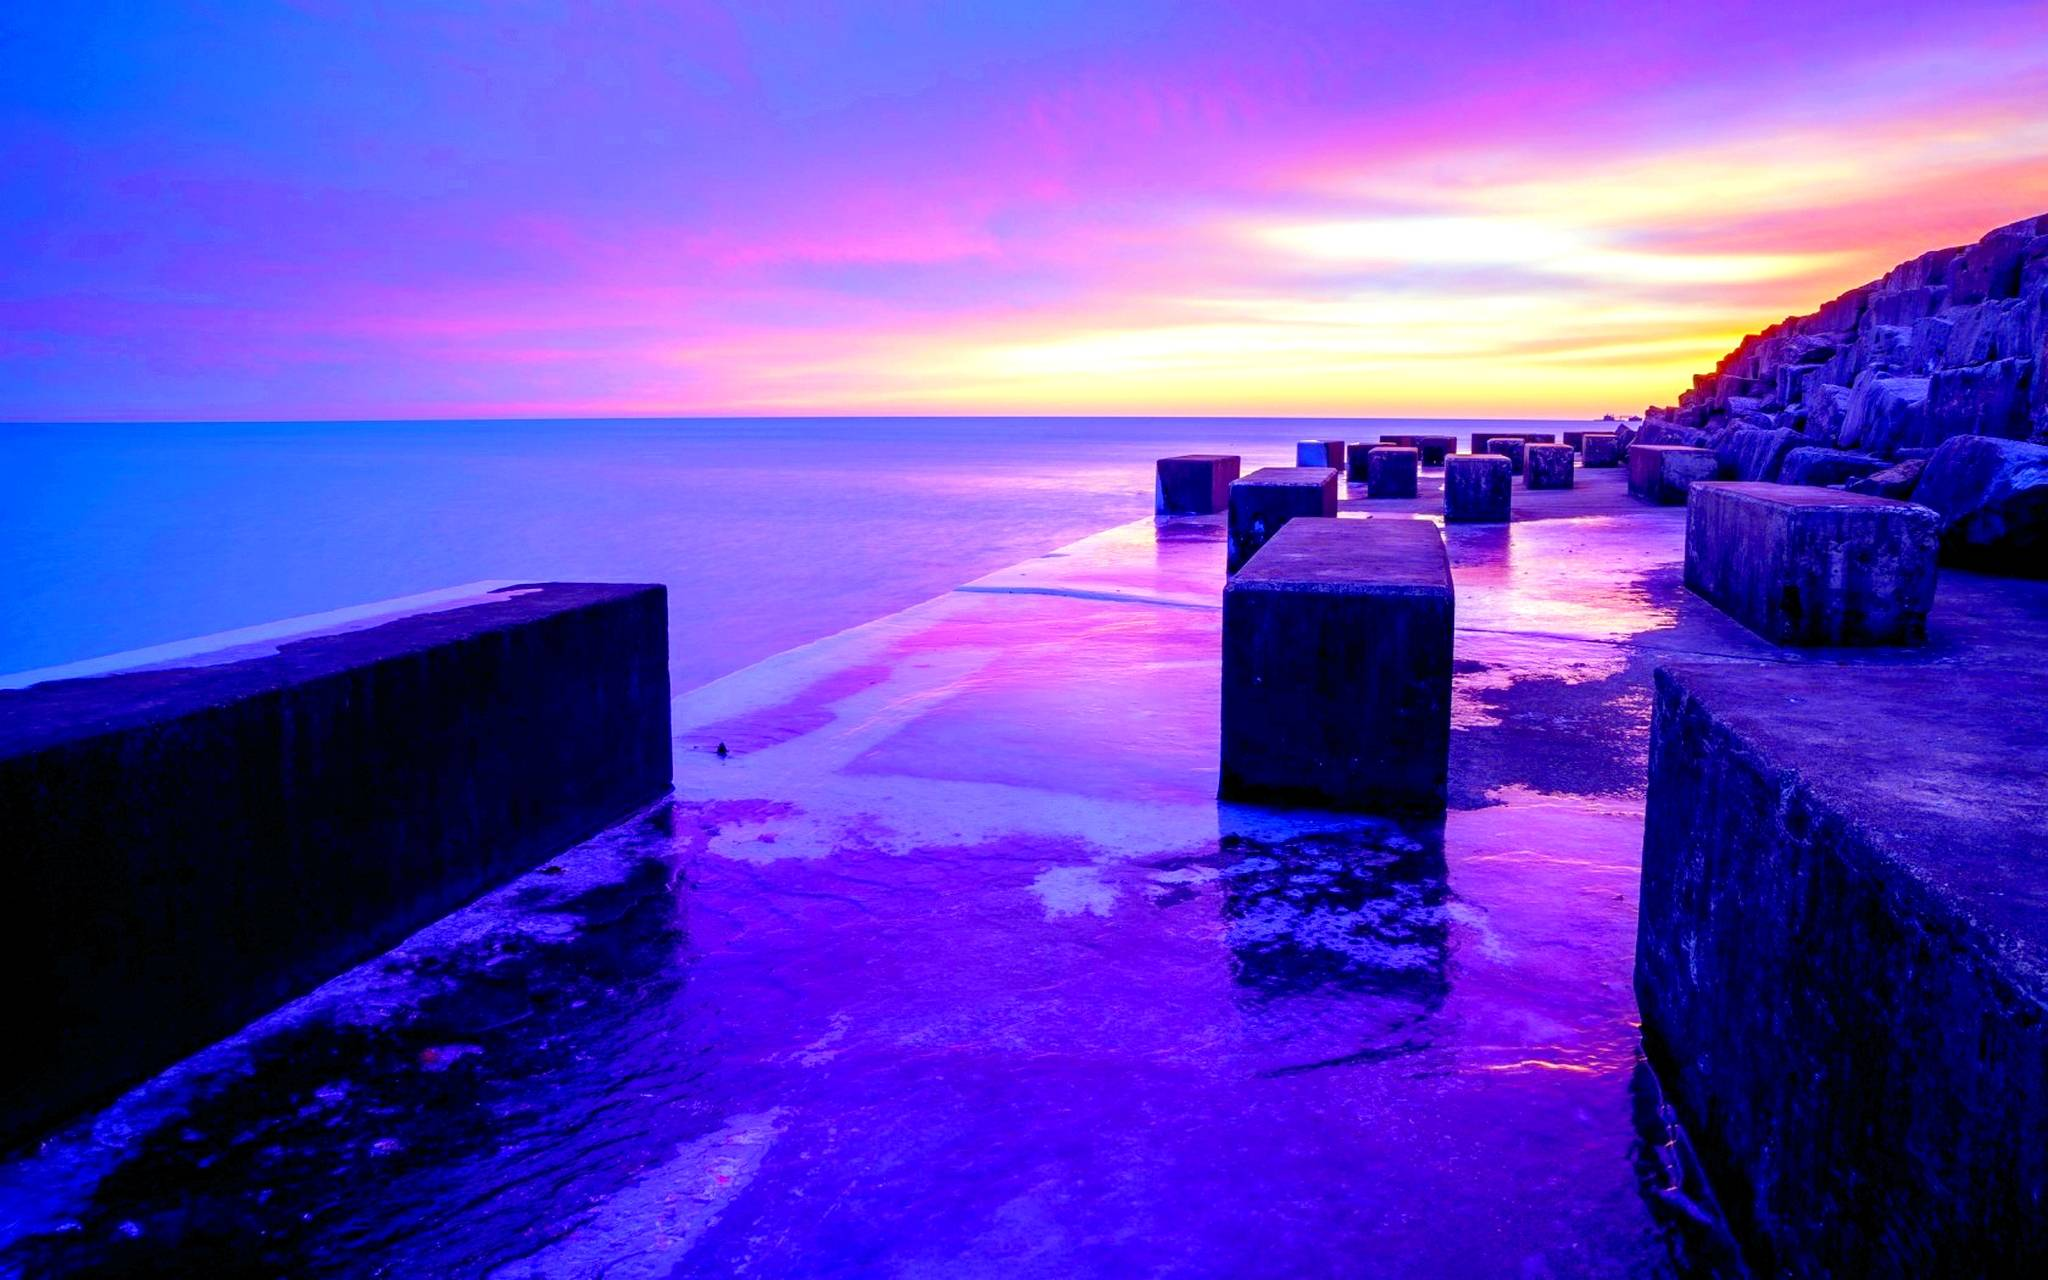 Purple Sunset Wallpapers Wallpaper Cave